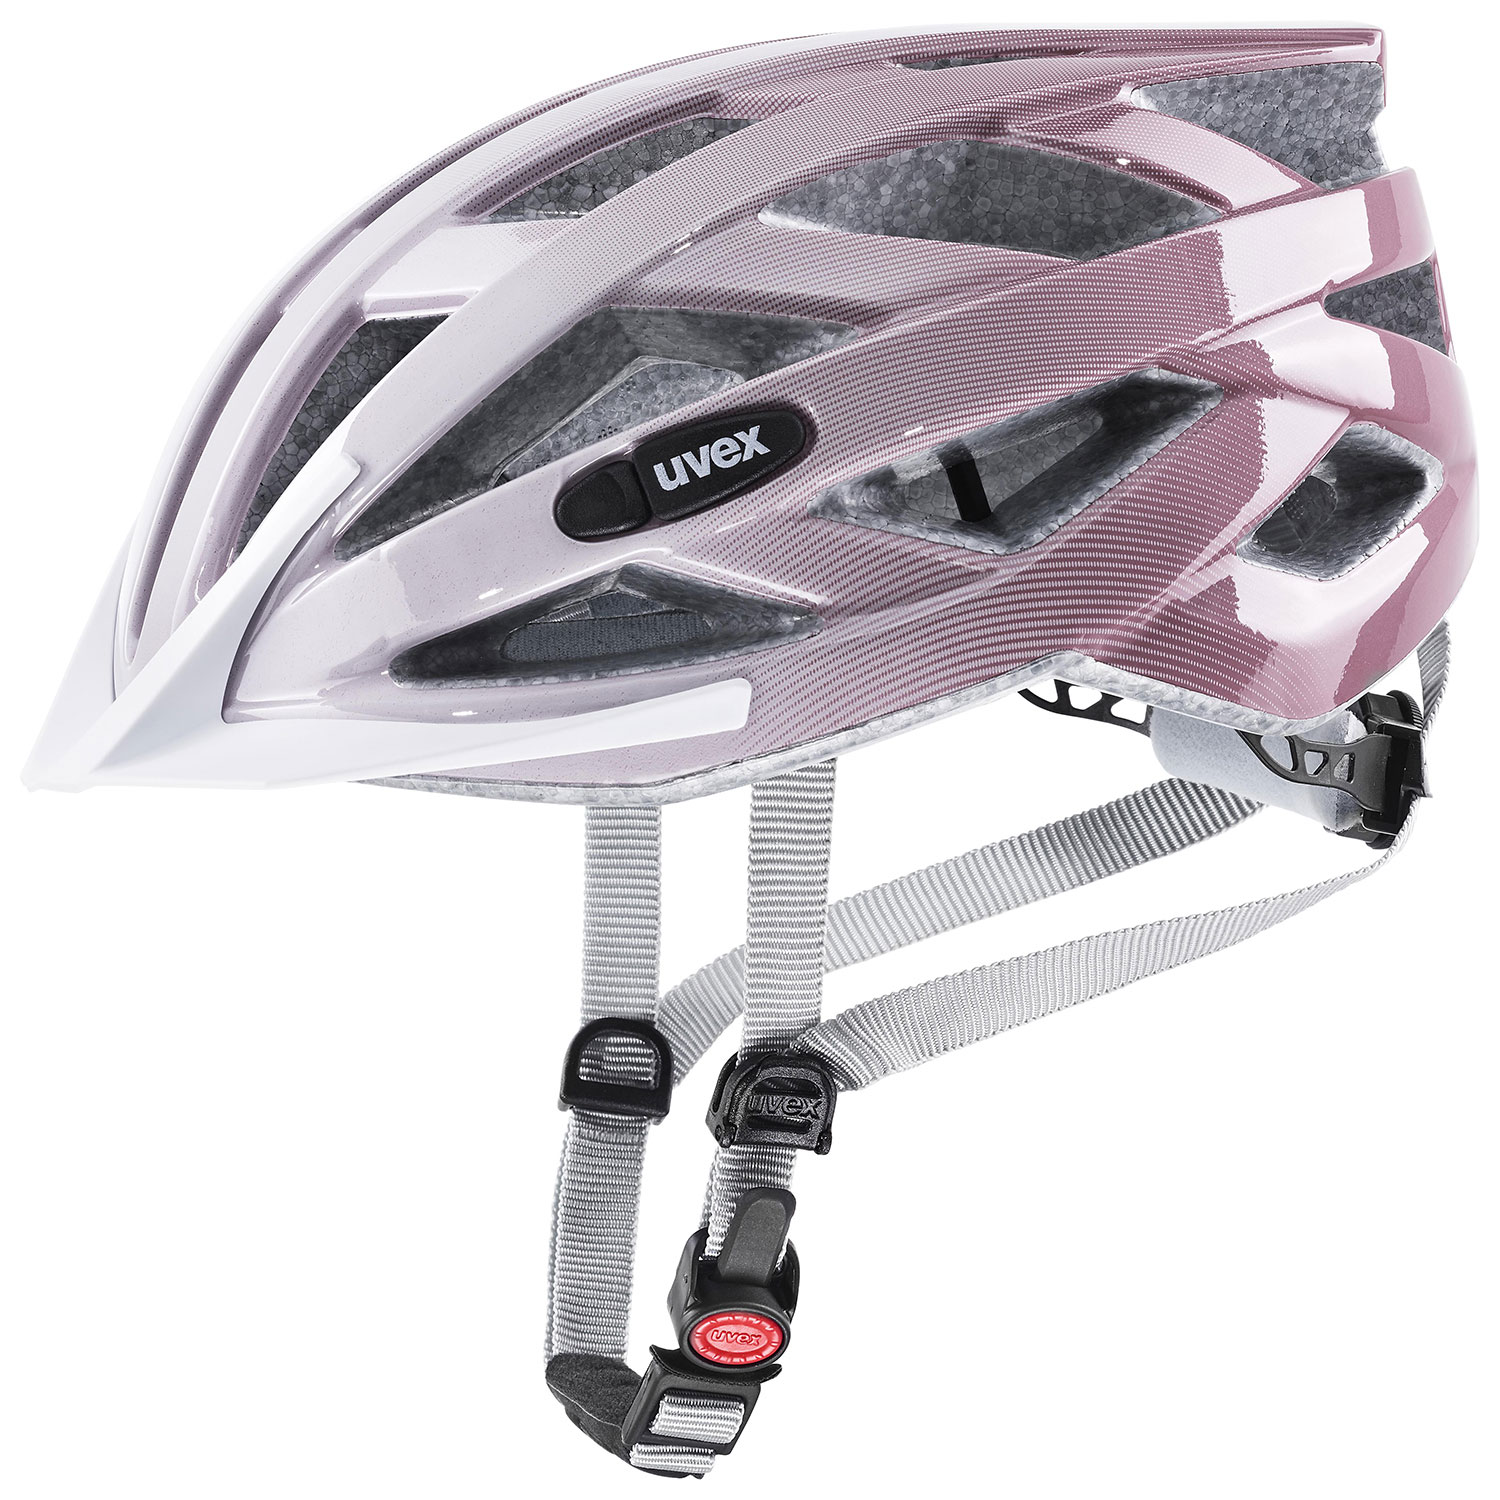 2021 UVEX HELMA AIR WING, WHITE - ROSÉ 56-60